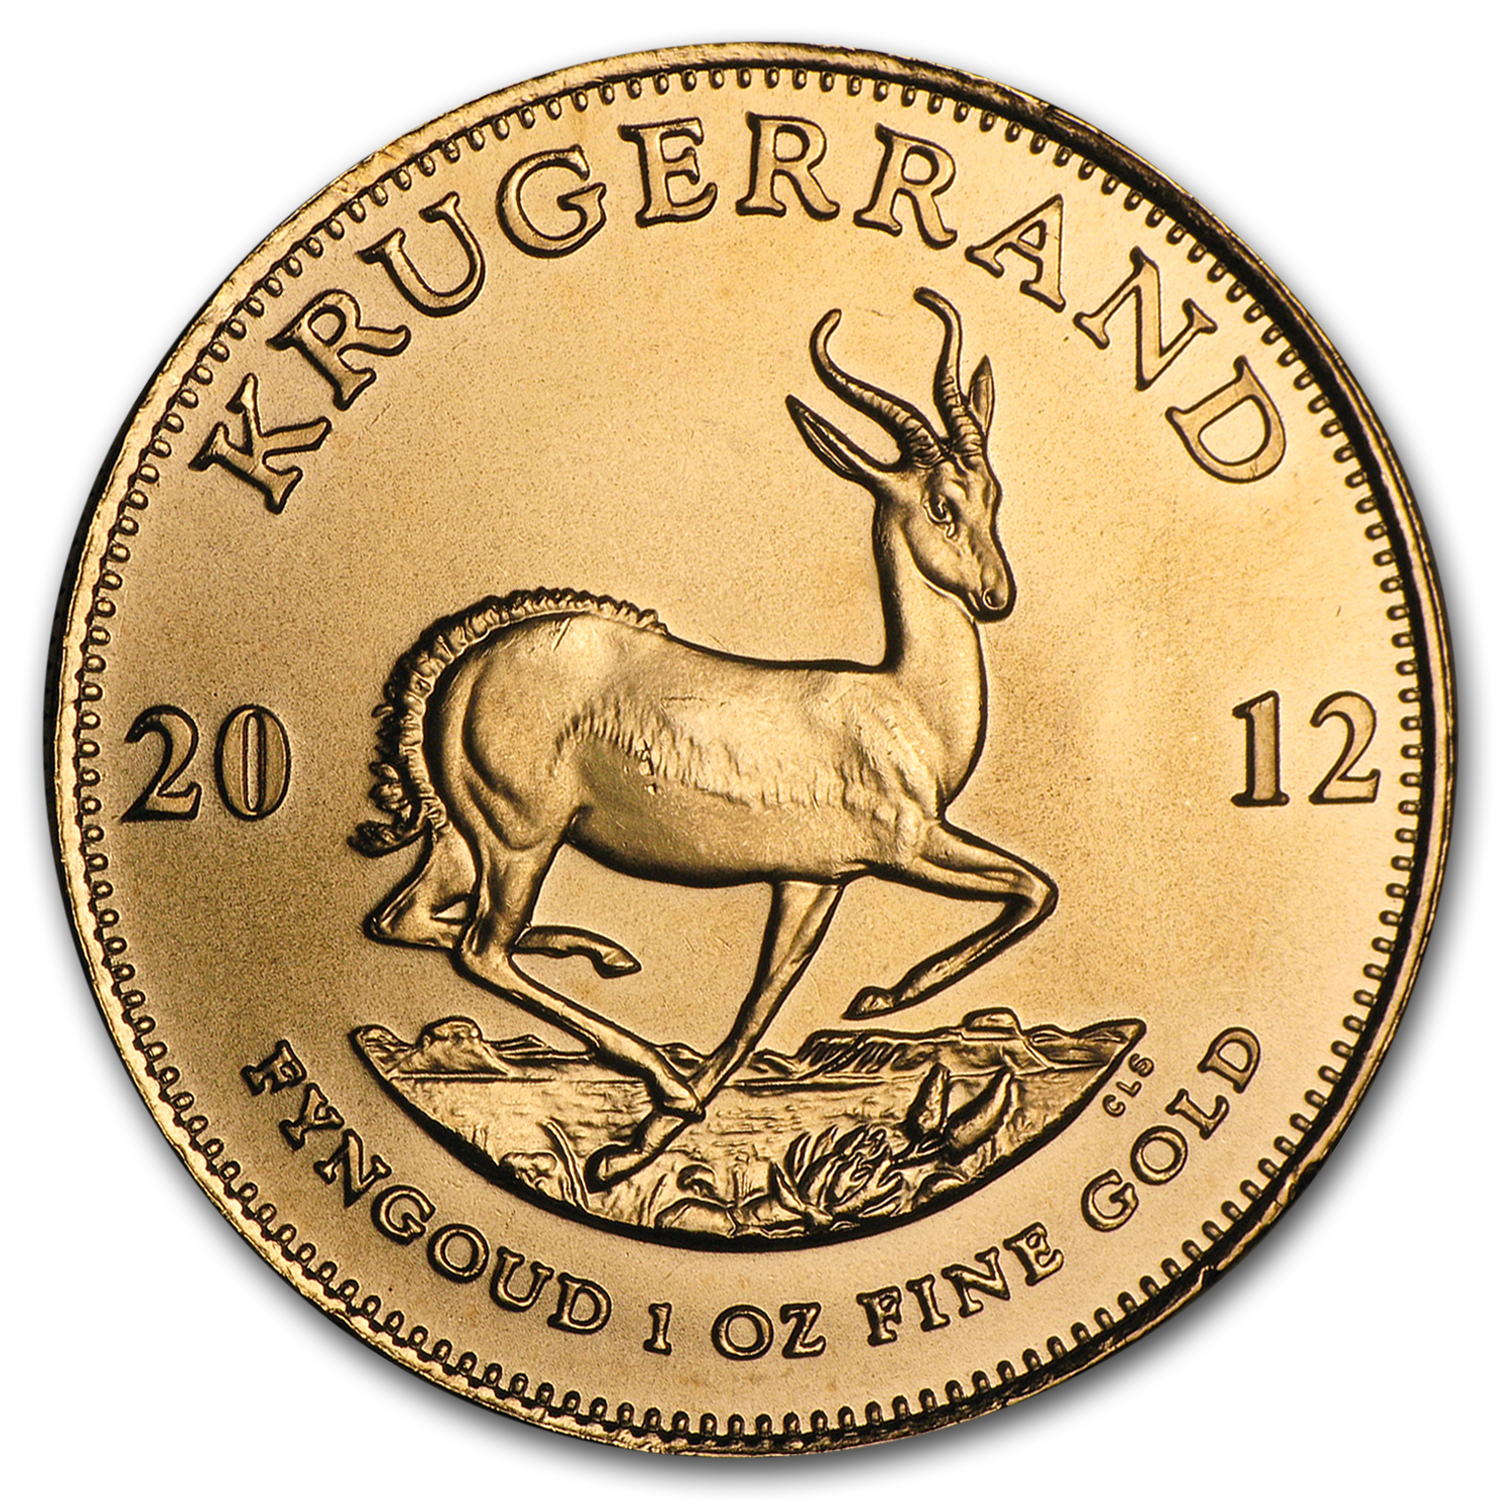 2012 South Africa 1 oz Gold Krugerrand